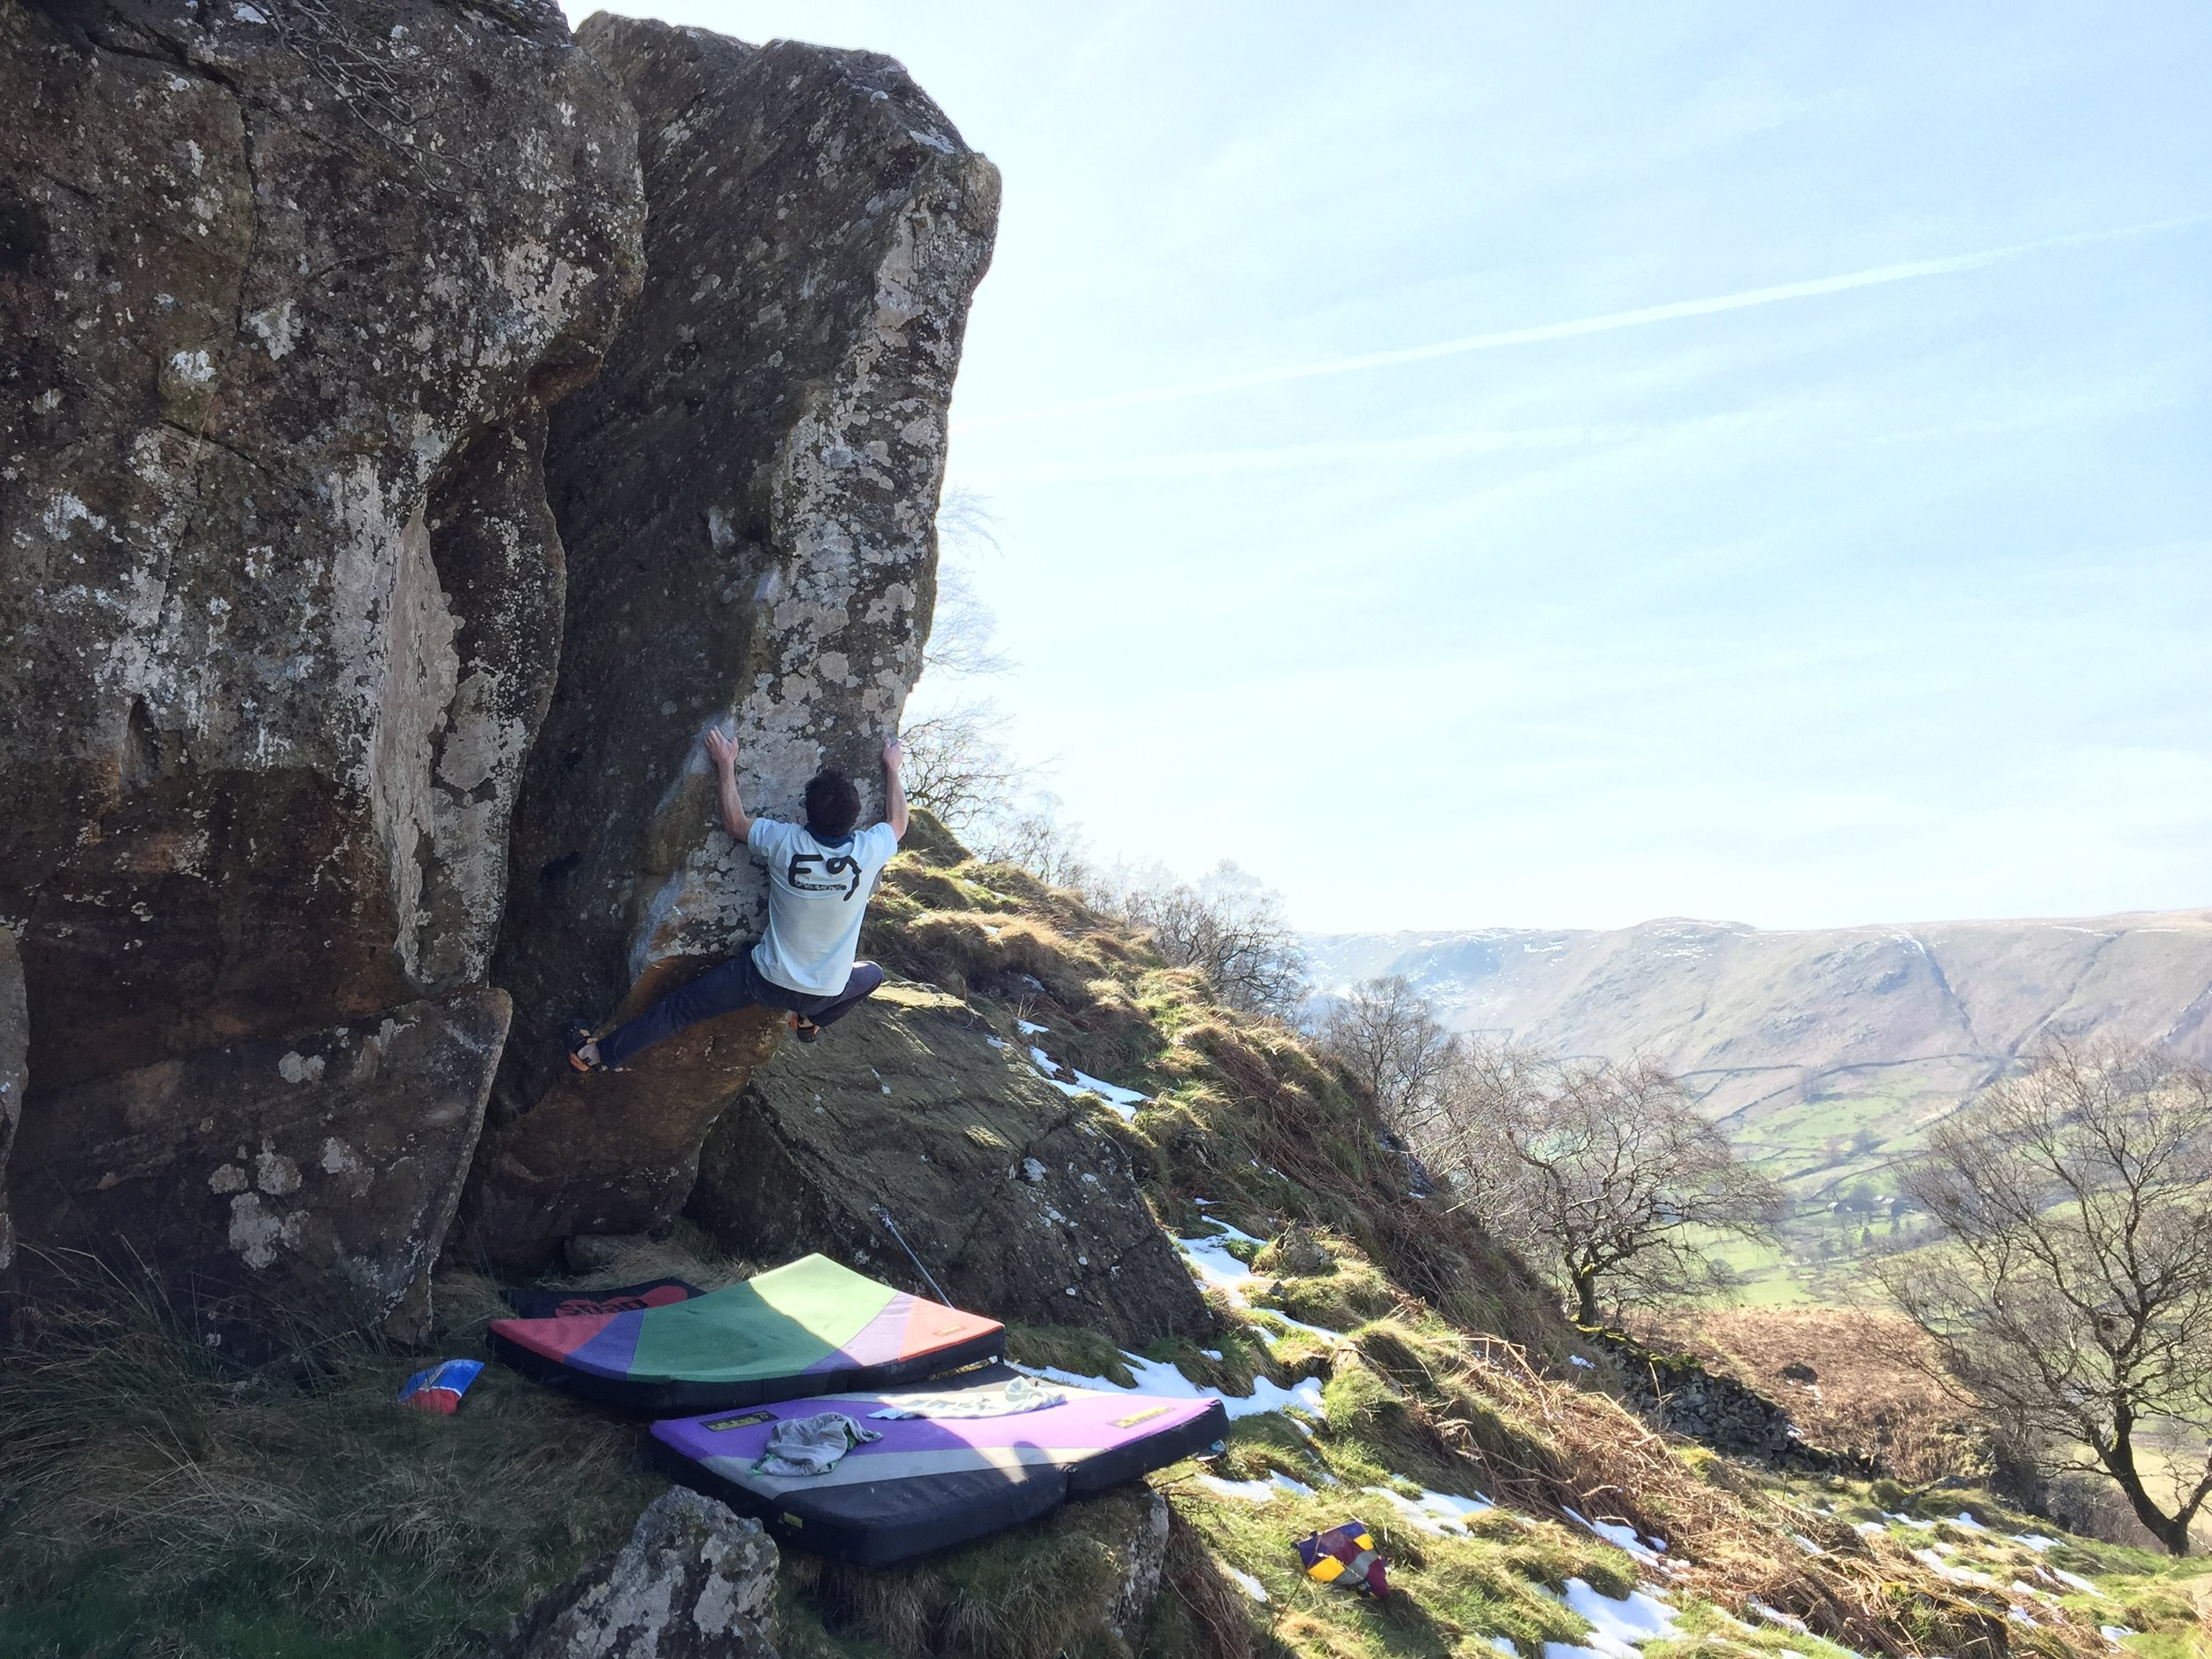 Coconutter Sit  7c (V9)at Gouther in the Lake District. Photo Tim Stubley